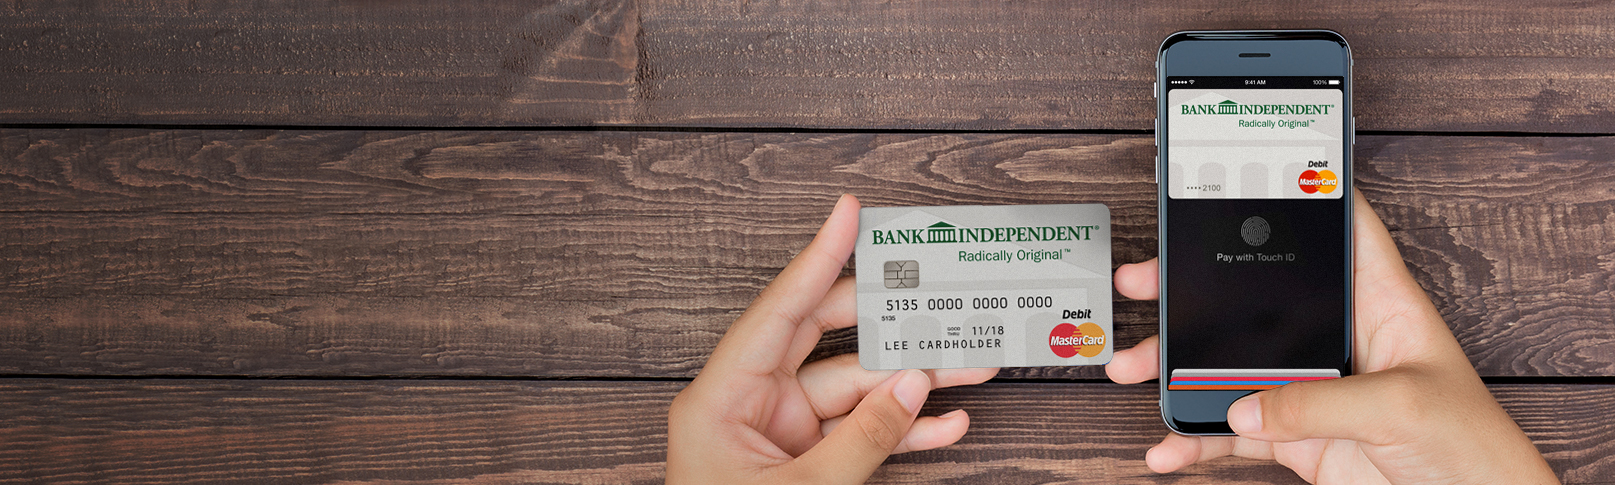 Bank Independent | Personal Debit Cards For Payment Convenience